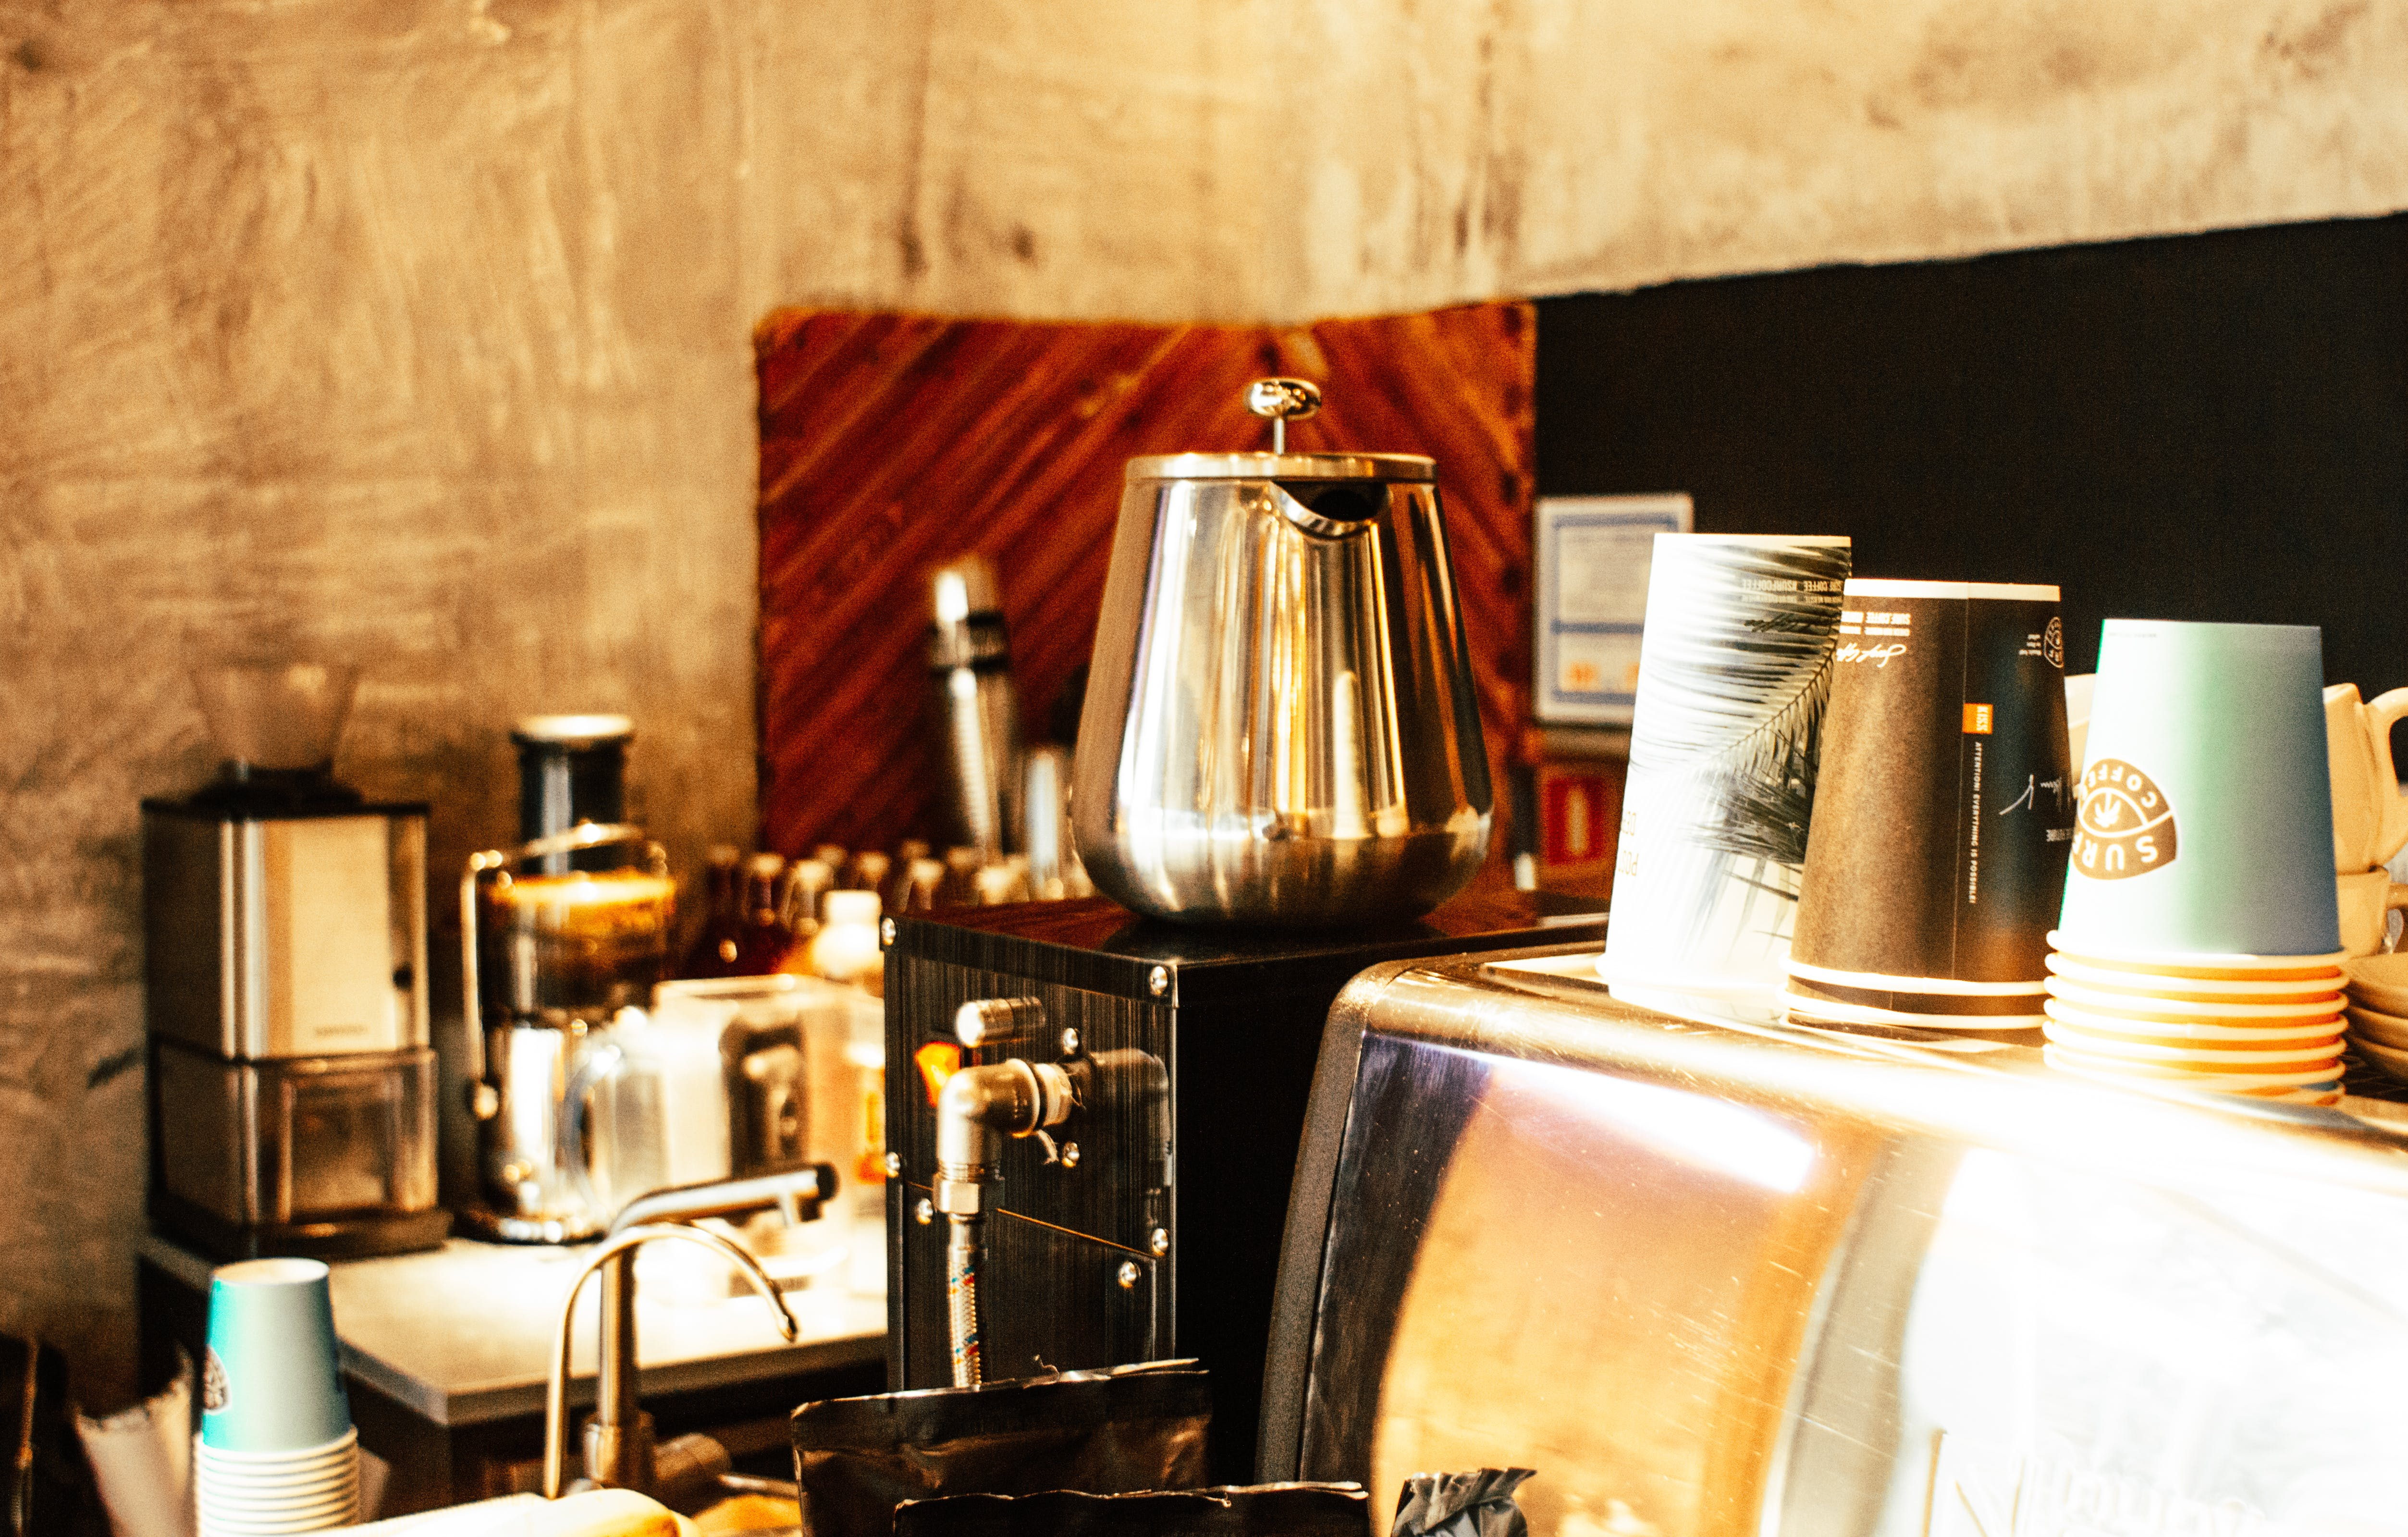 Stainless Steel Coffee Pot And Disposable Cups